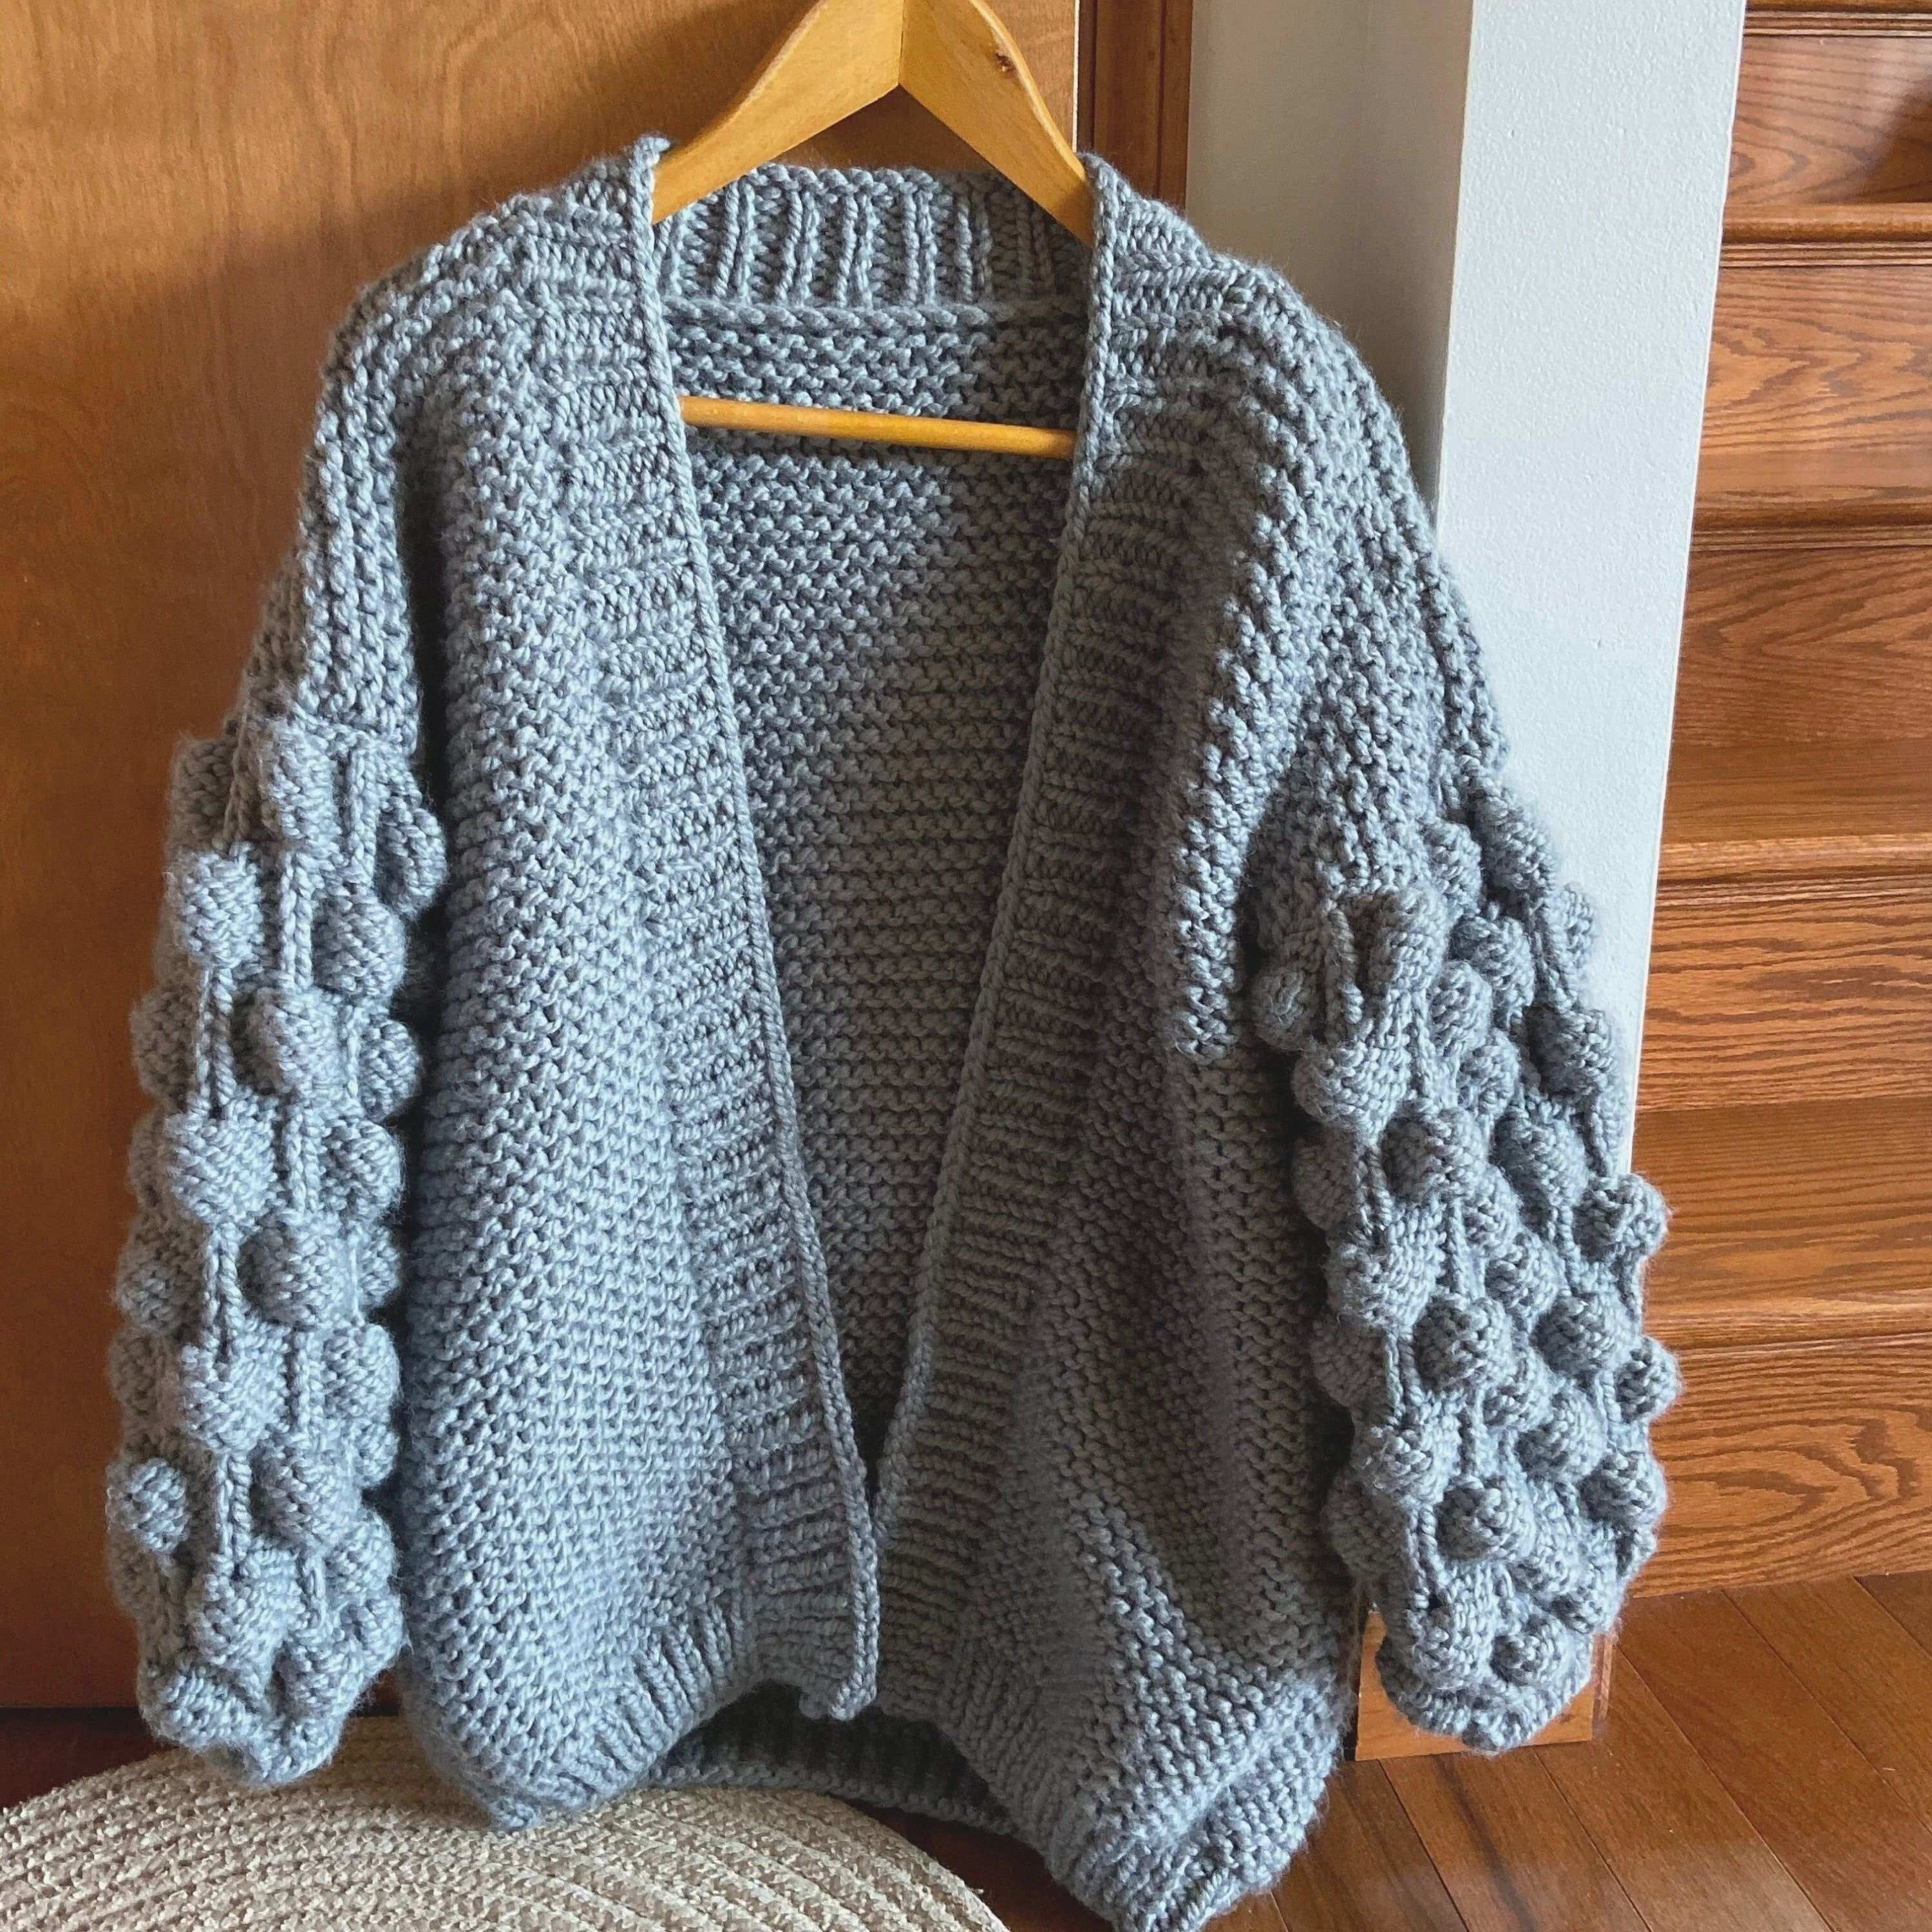 Bubble Sleeve Cardigan Knitting Pattern Baby Chunky Cardigan For Women Hitting Coat Ey Cardigan In 2020 Grobe Strickmuster Pullovermuster Strickjacke Muster